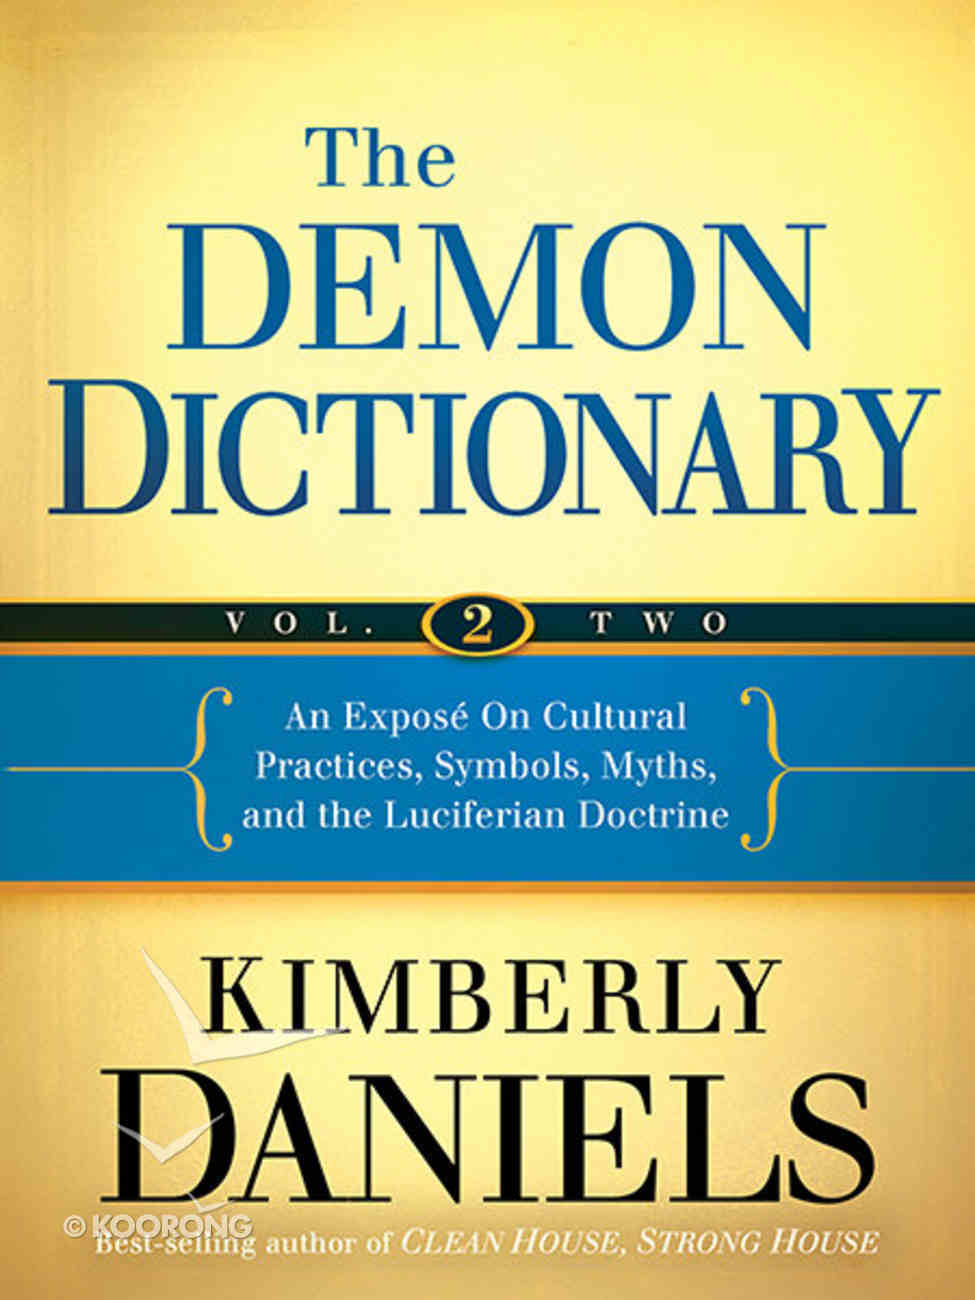 The Demon Dictionary: An Expos on Cultural Practices, Symbols, Myths, and the Luciferian Doctrine (Vol 2) Paperback